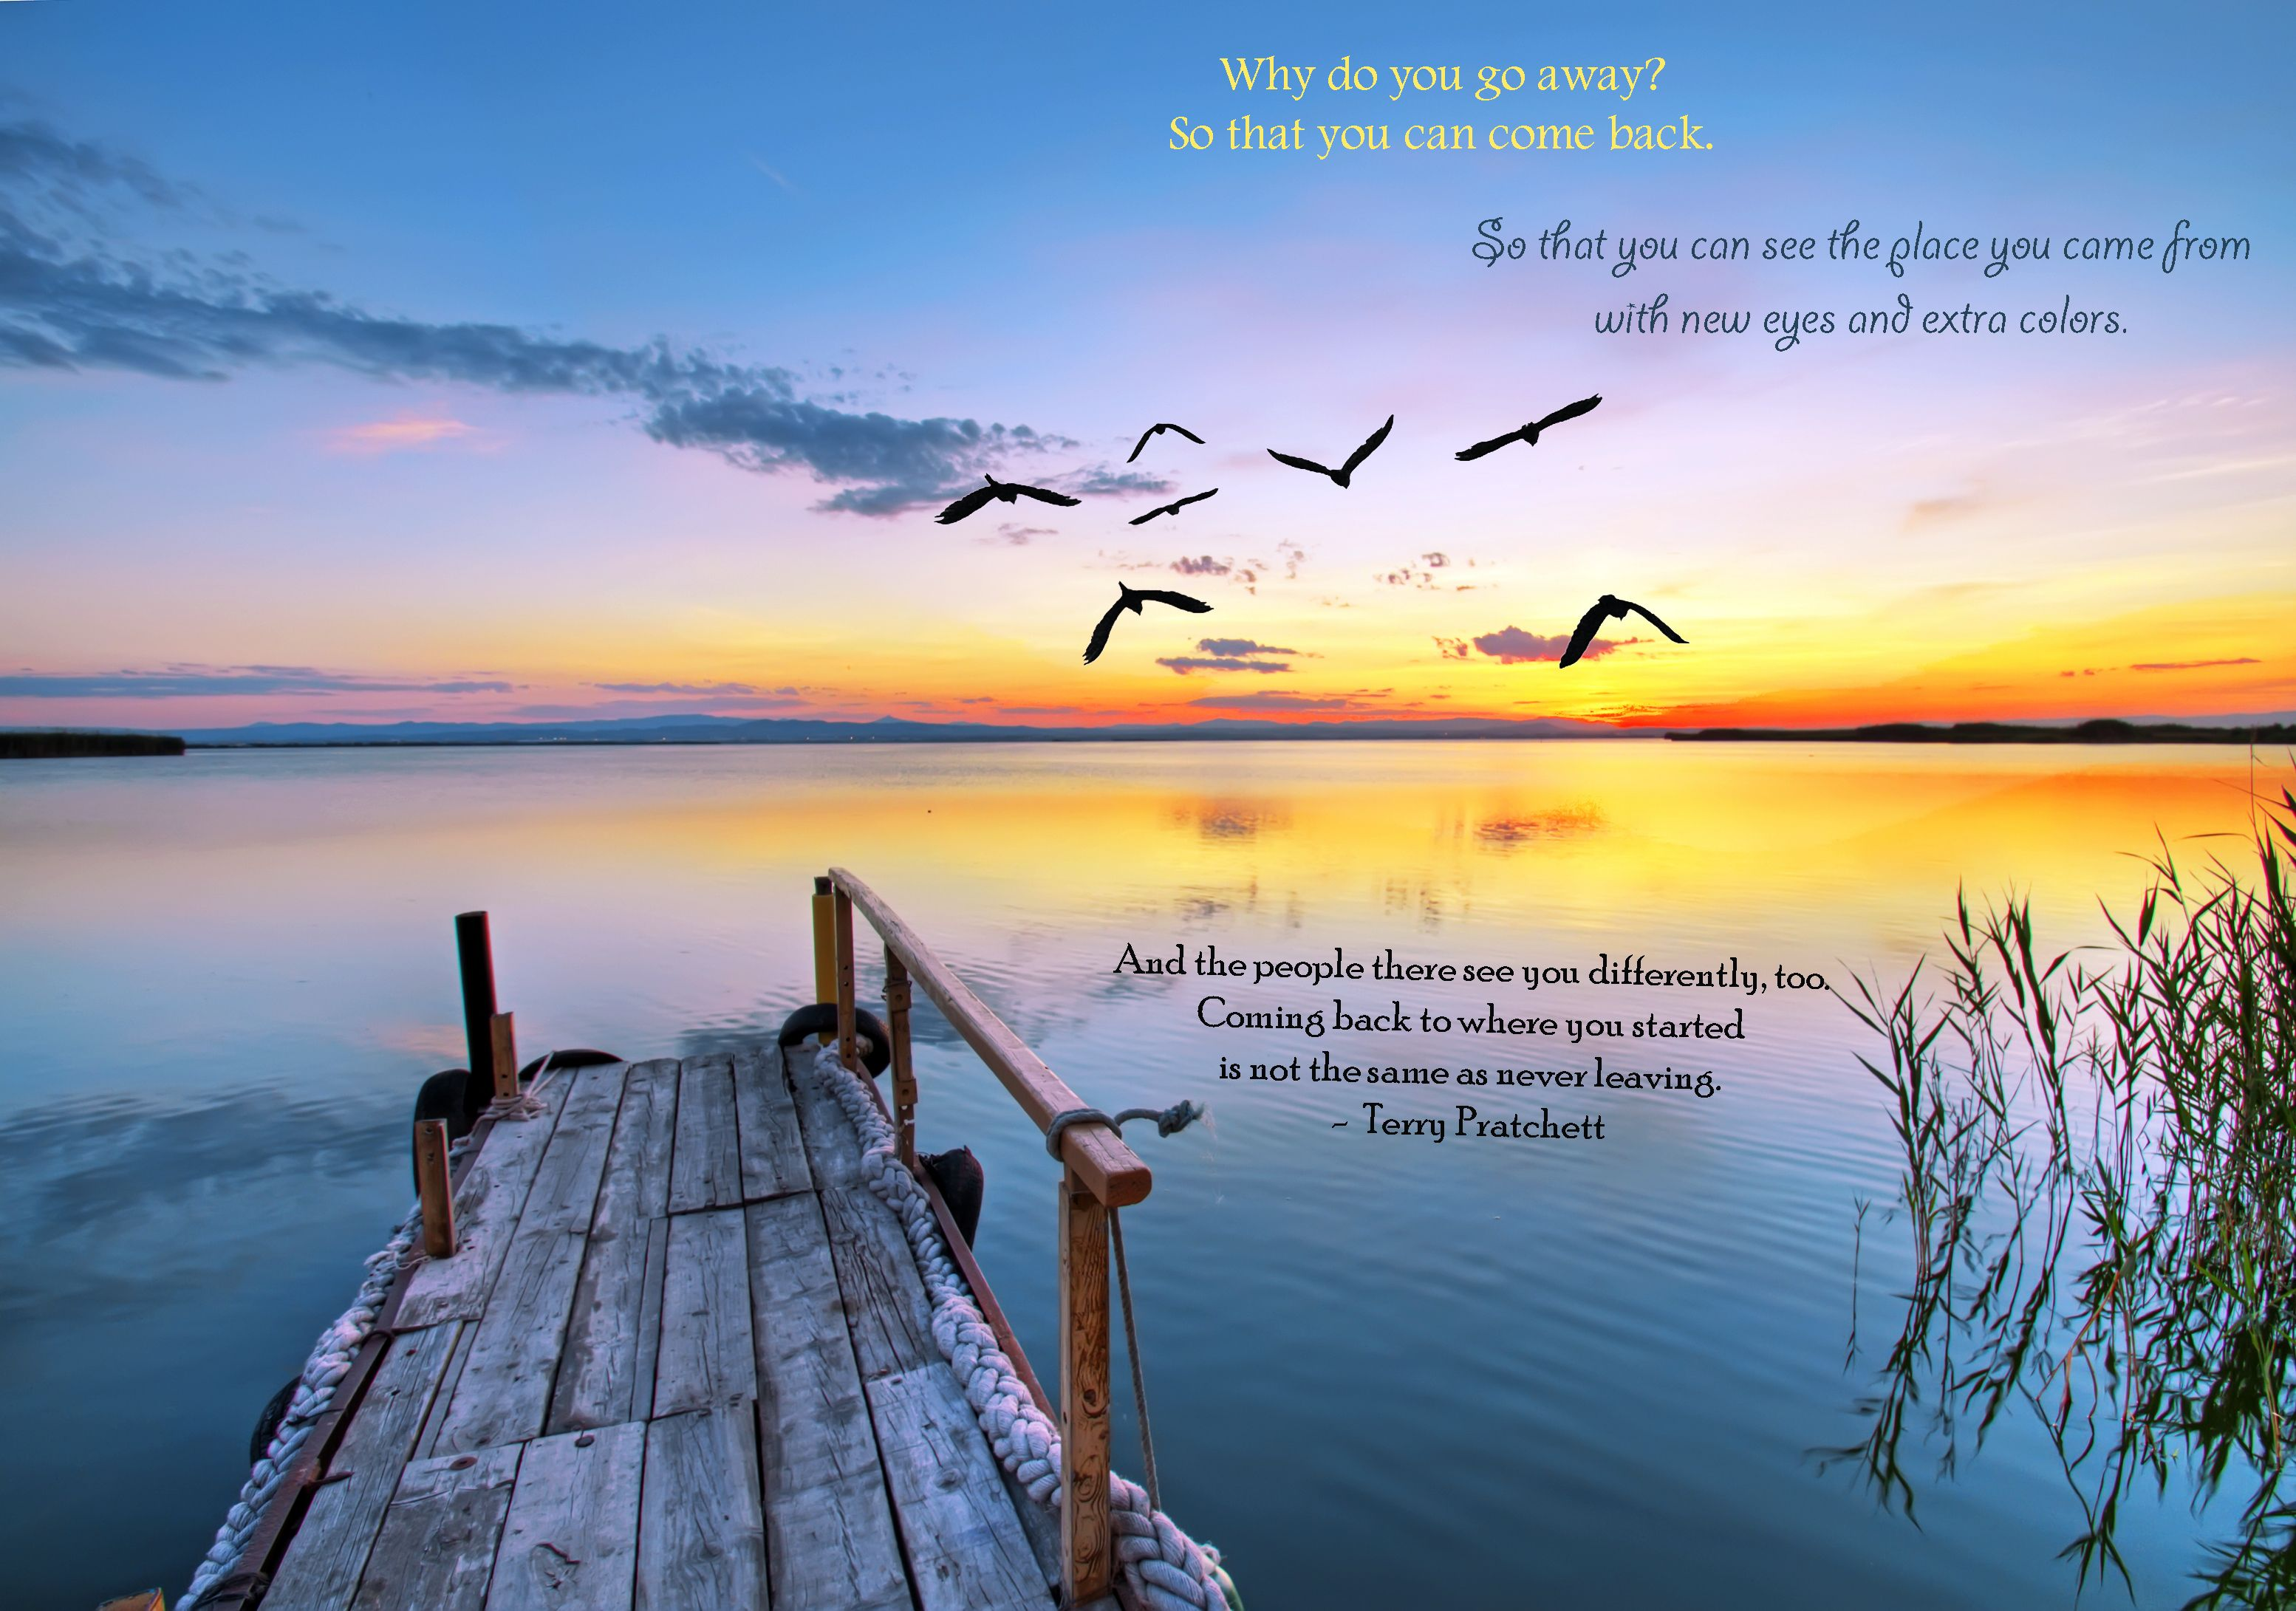 Quote by Terry Pratchett Travel Quotes Wall murals Landscape 3108x2181